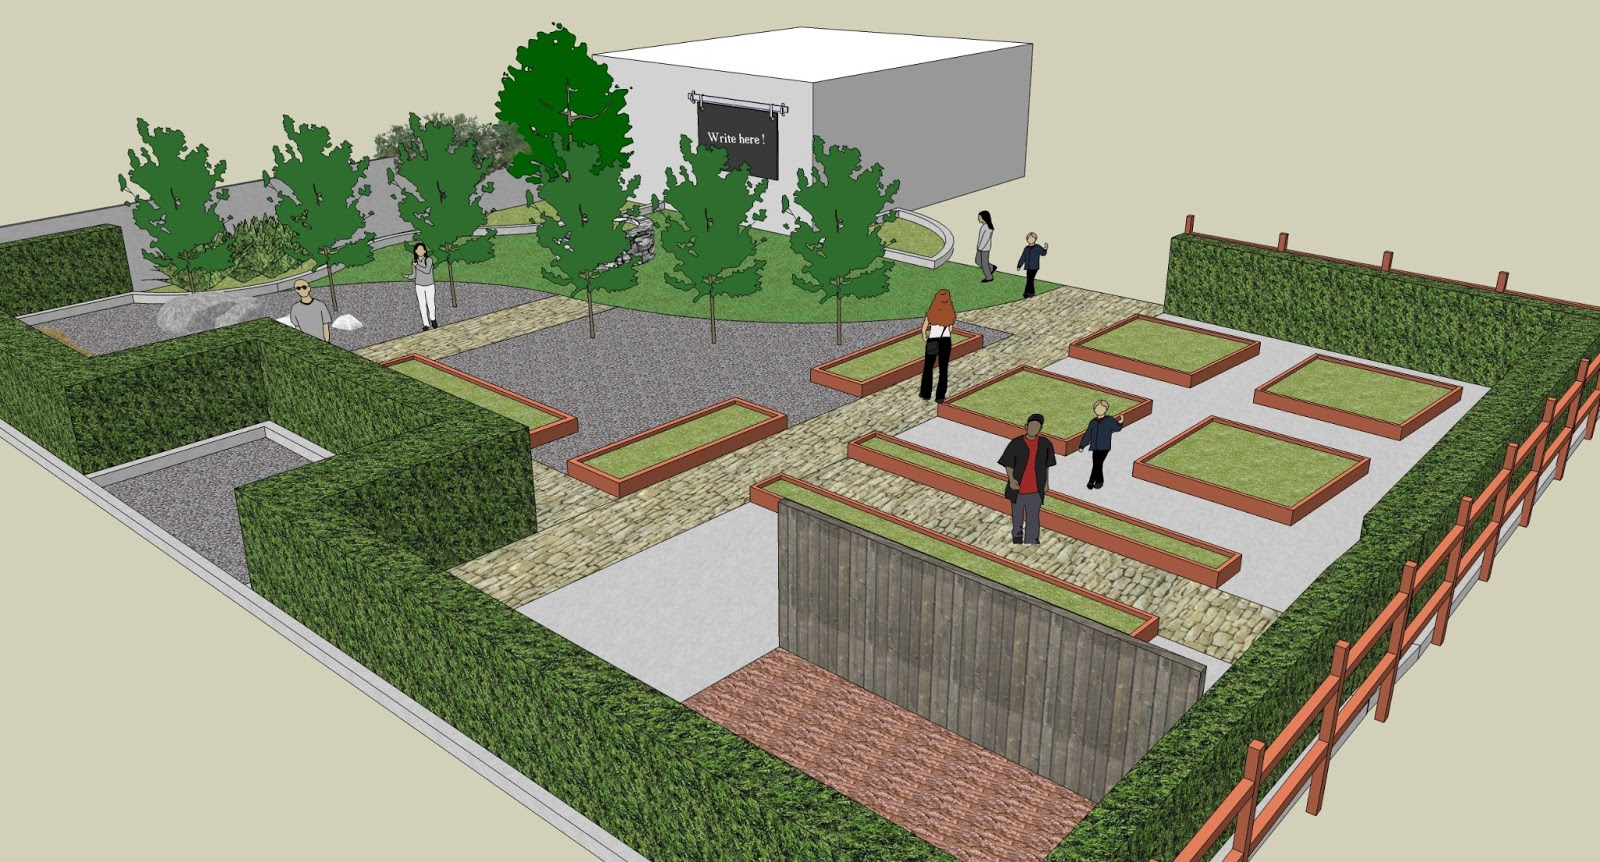 School garden design gannon griffin landscape architecture for School garden designs